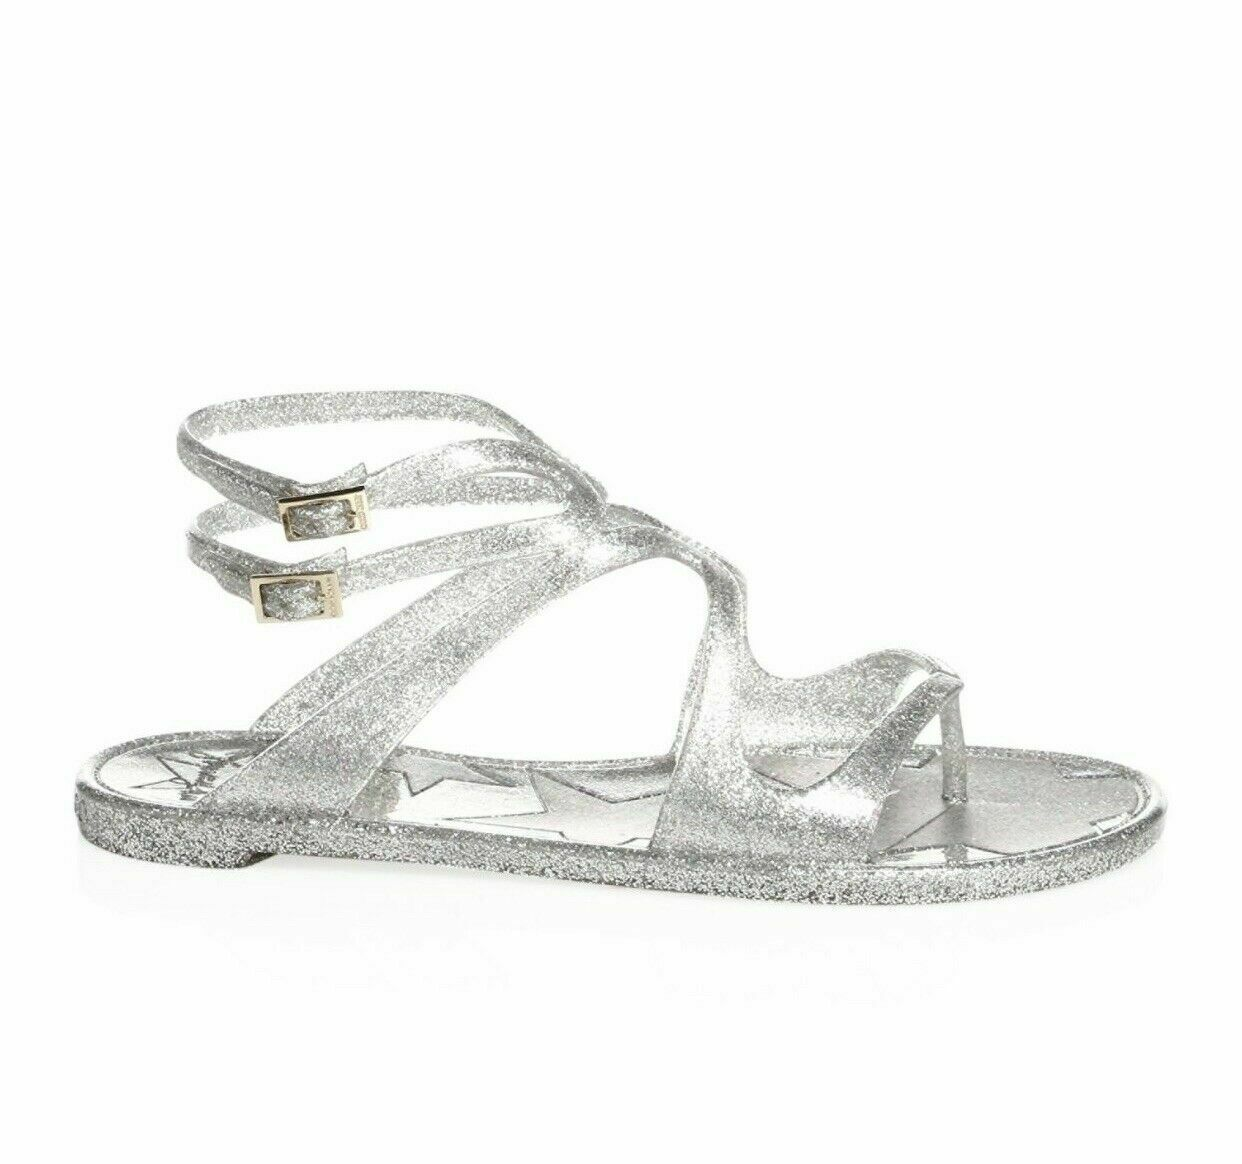 Jimmy Choo Lance Jelly Gladiator Sandals Size: 39 MSRP: $350.00